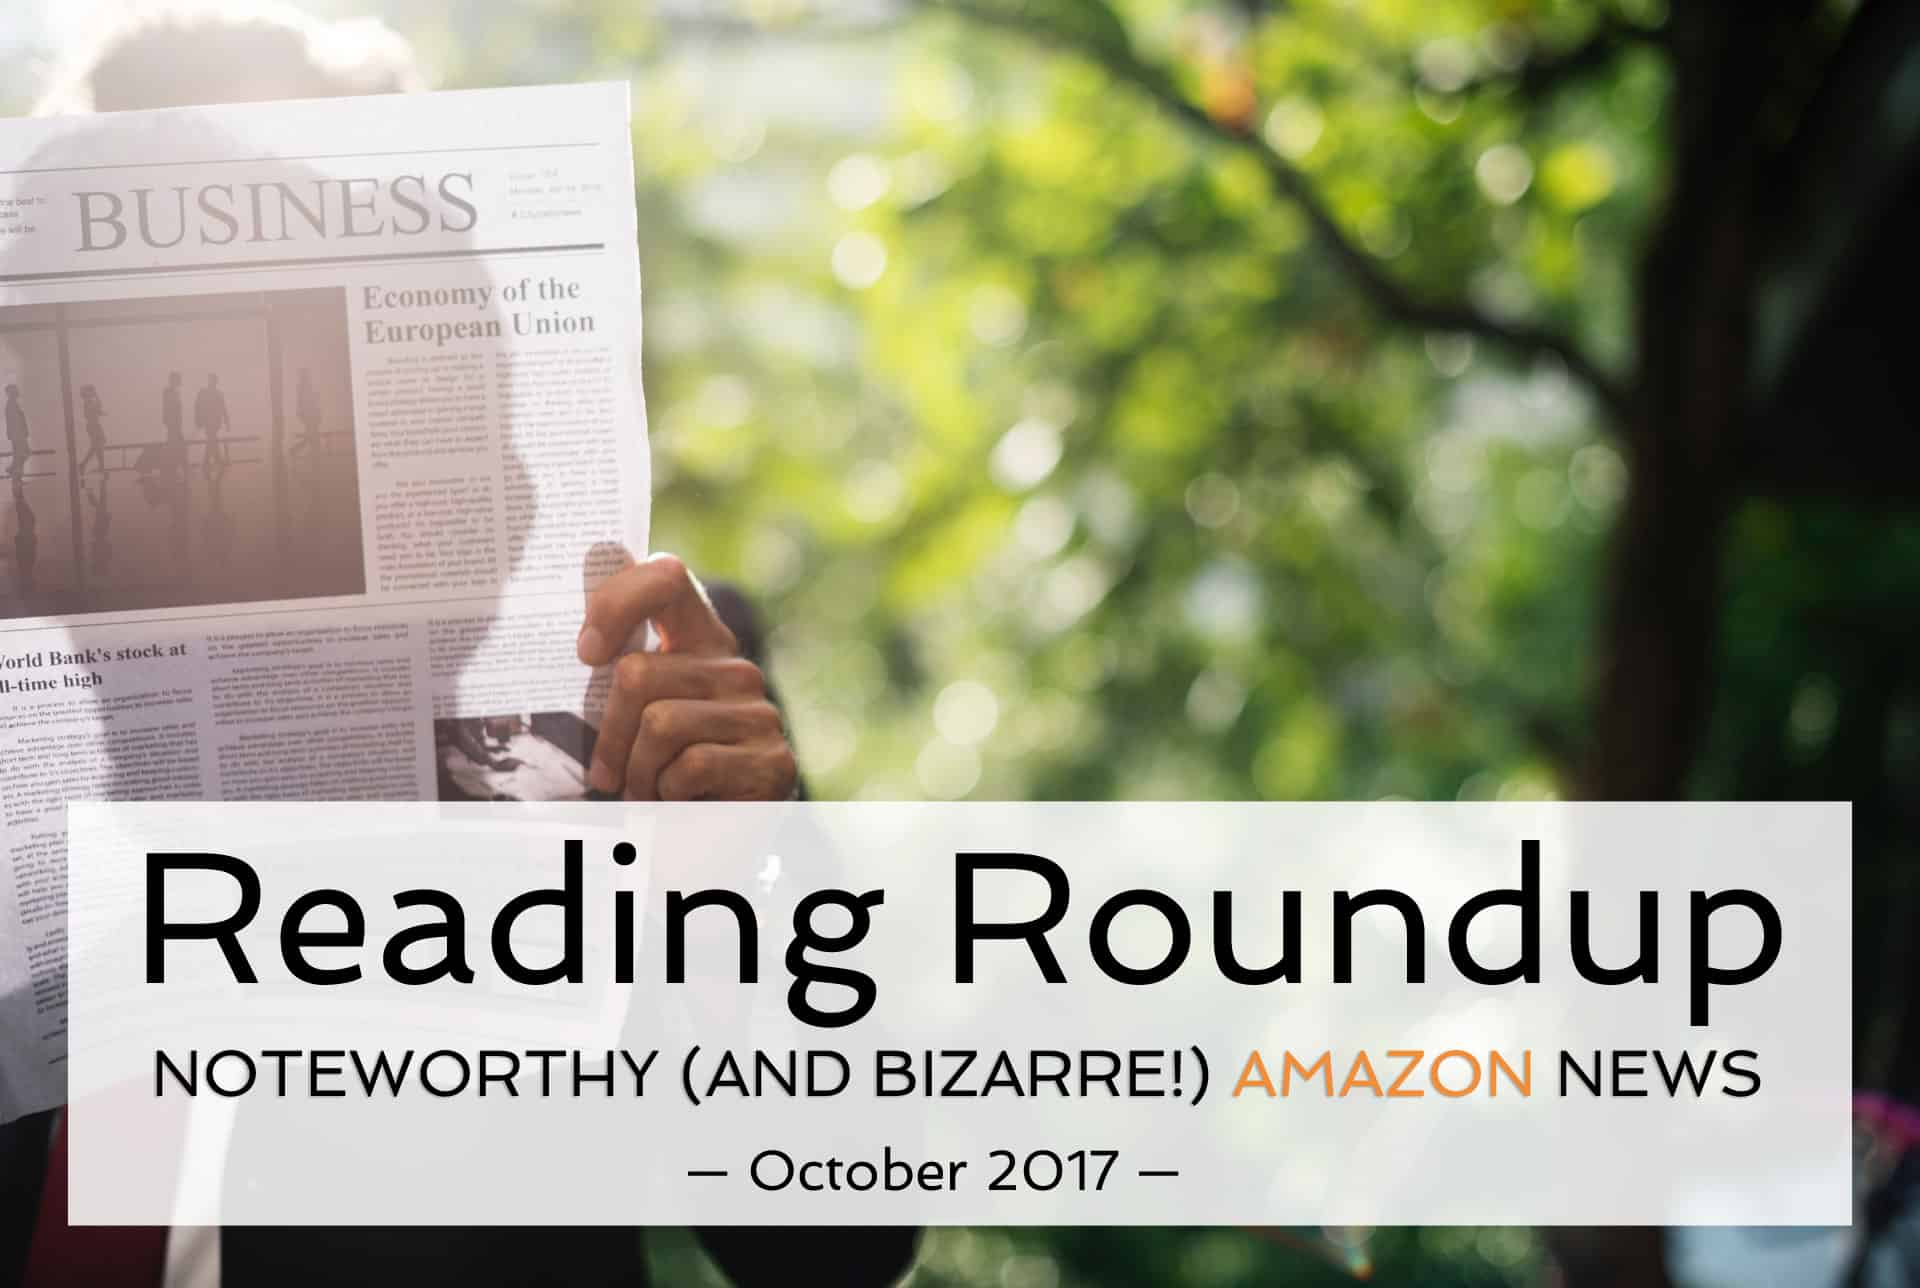 What's New in Amazon Business: Reading Roundup October 2017